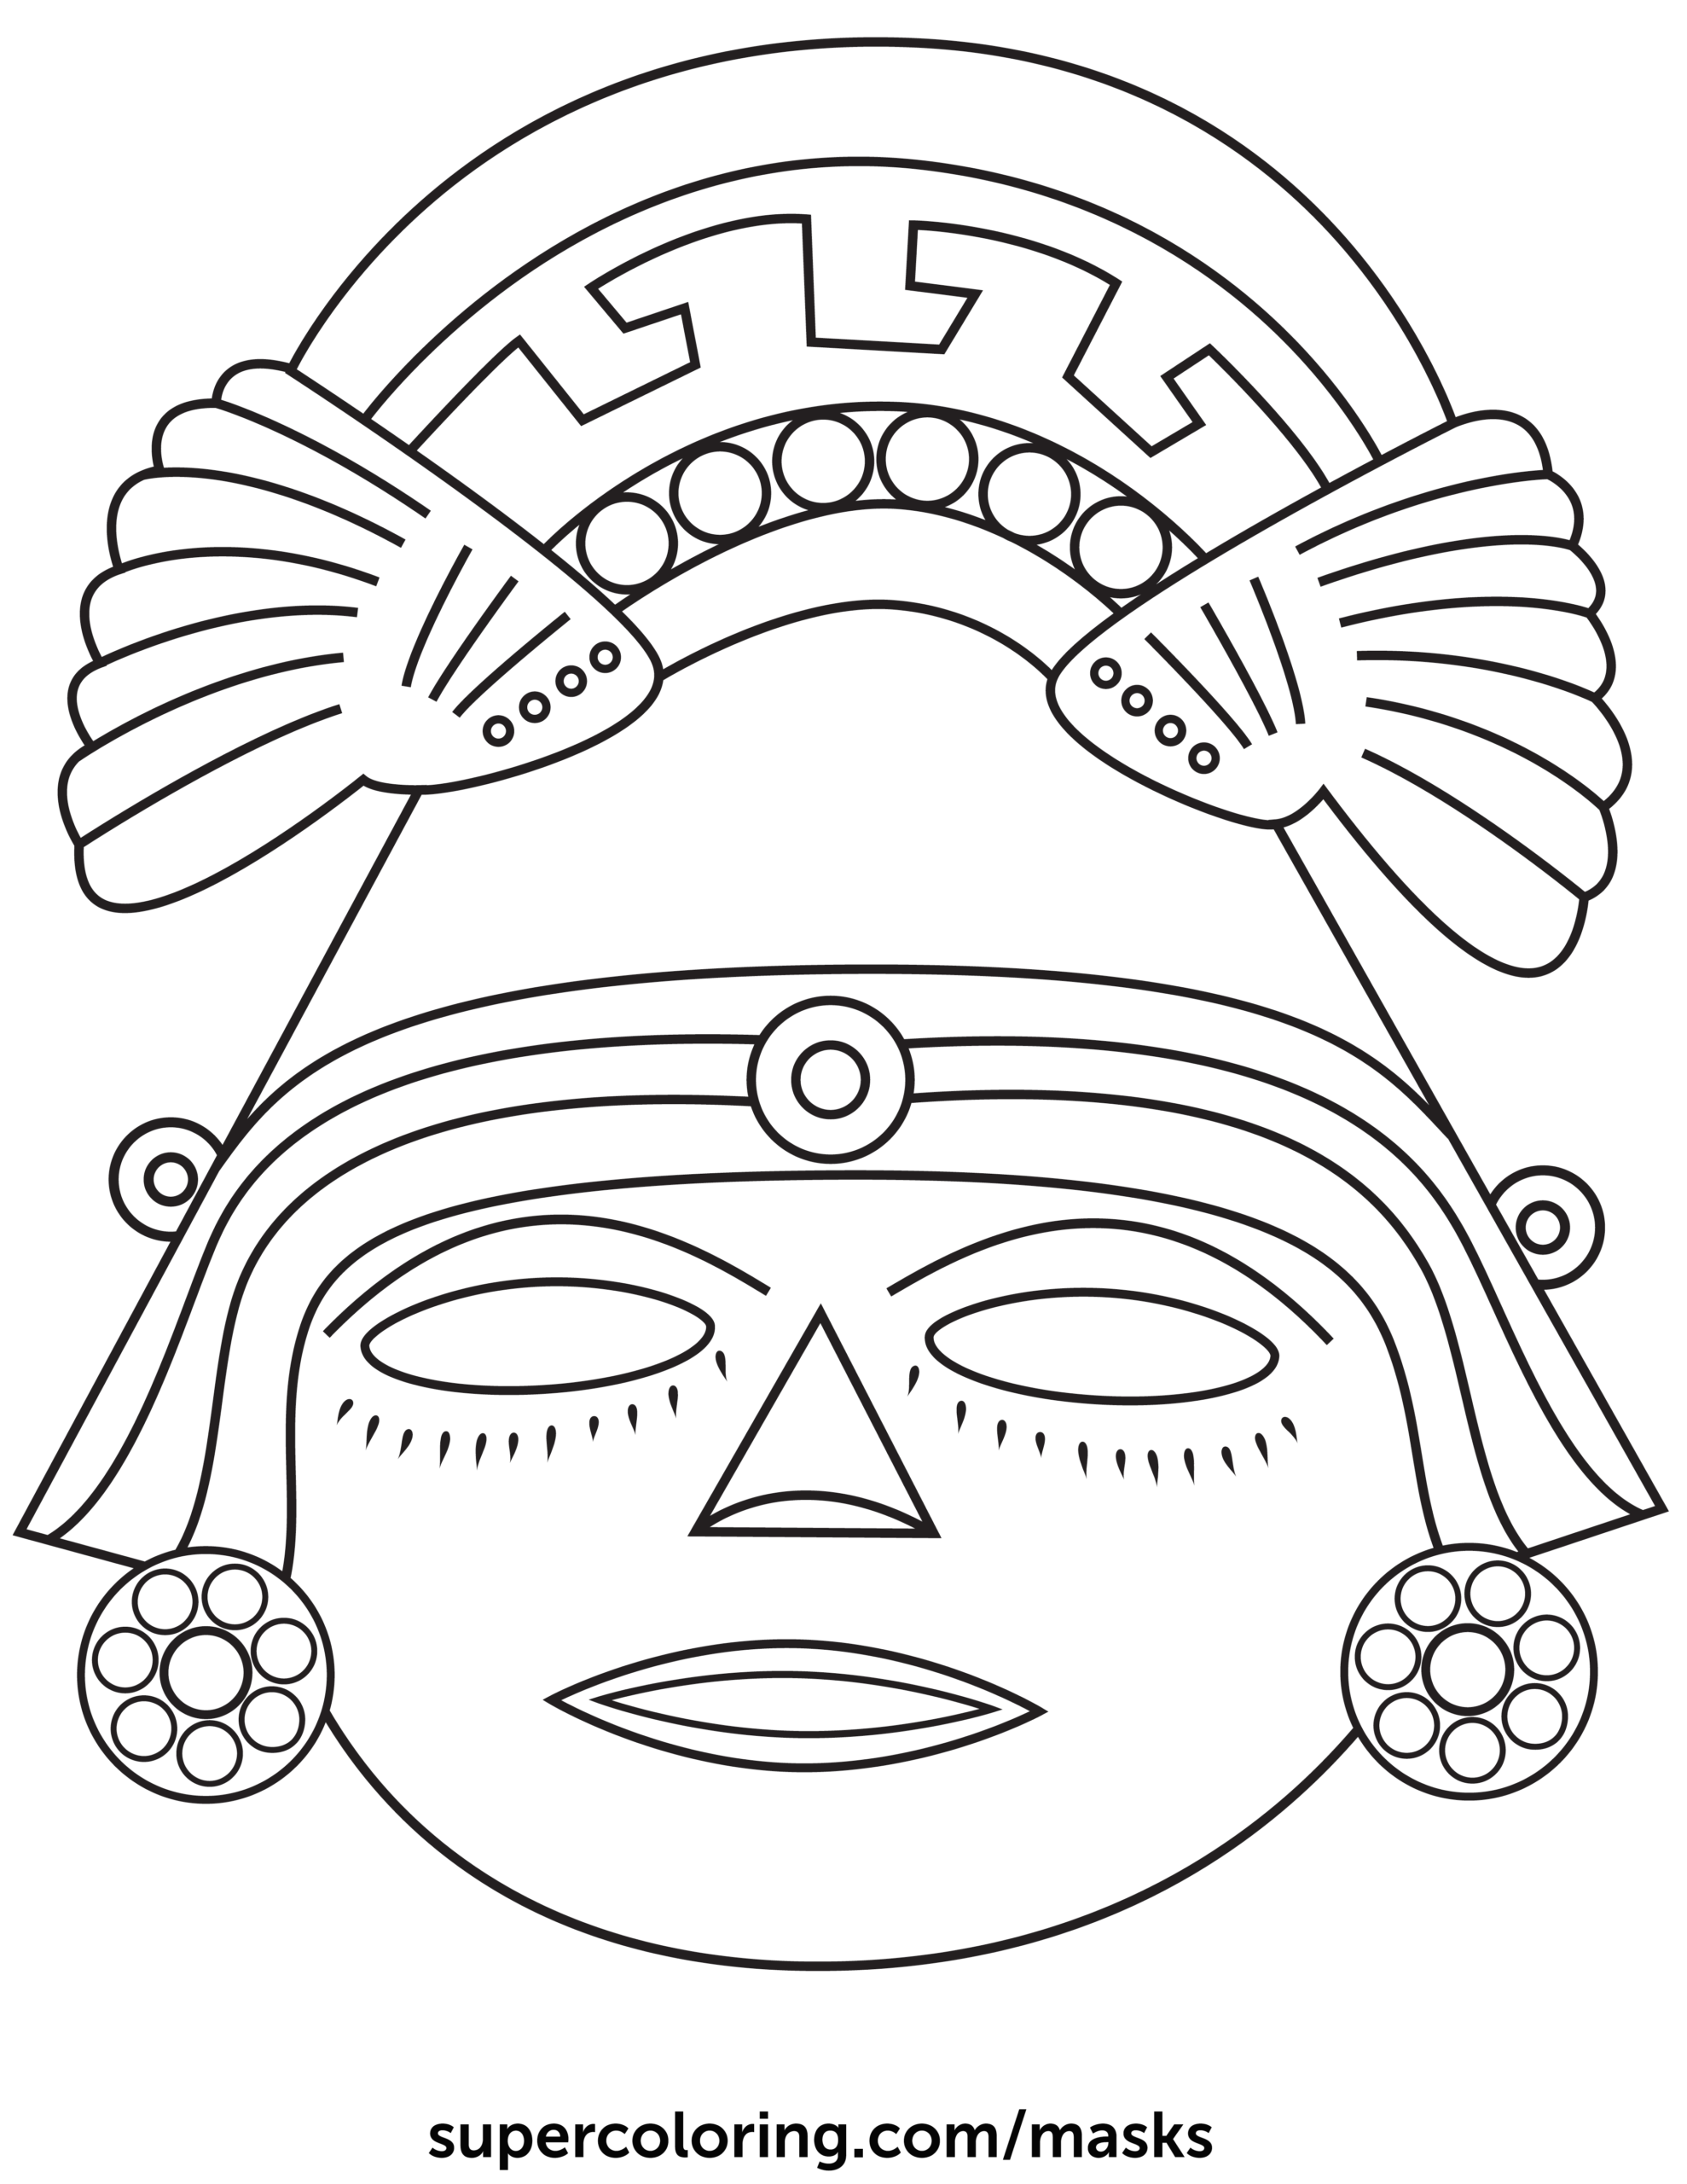 Aztec № 1 In 2020 | Aztec Mask, Aztec Art, Mayan Mask pertaining to Aztec Mask Template